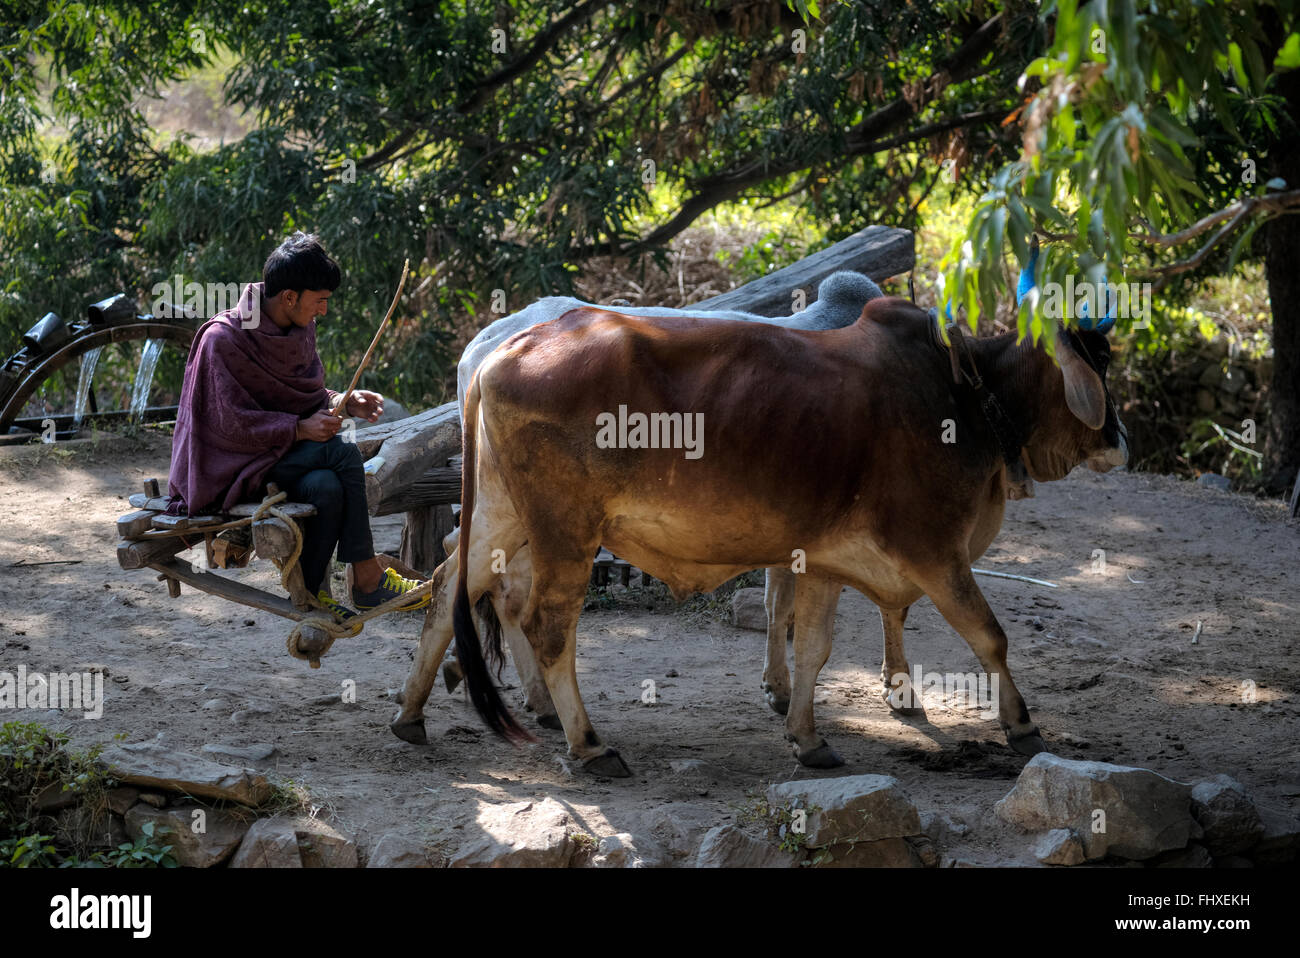 irrigation system with water pump, run with man and two bulls, in Rajasthan, India - Stock Image